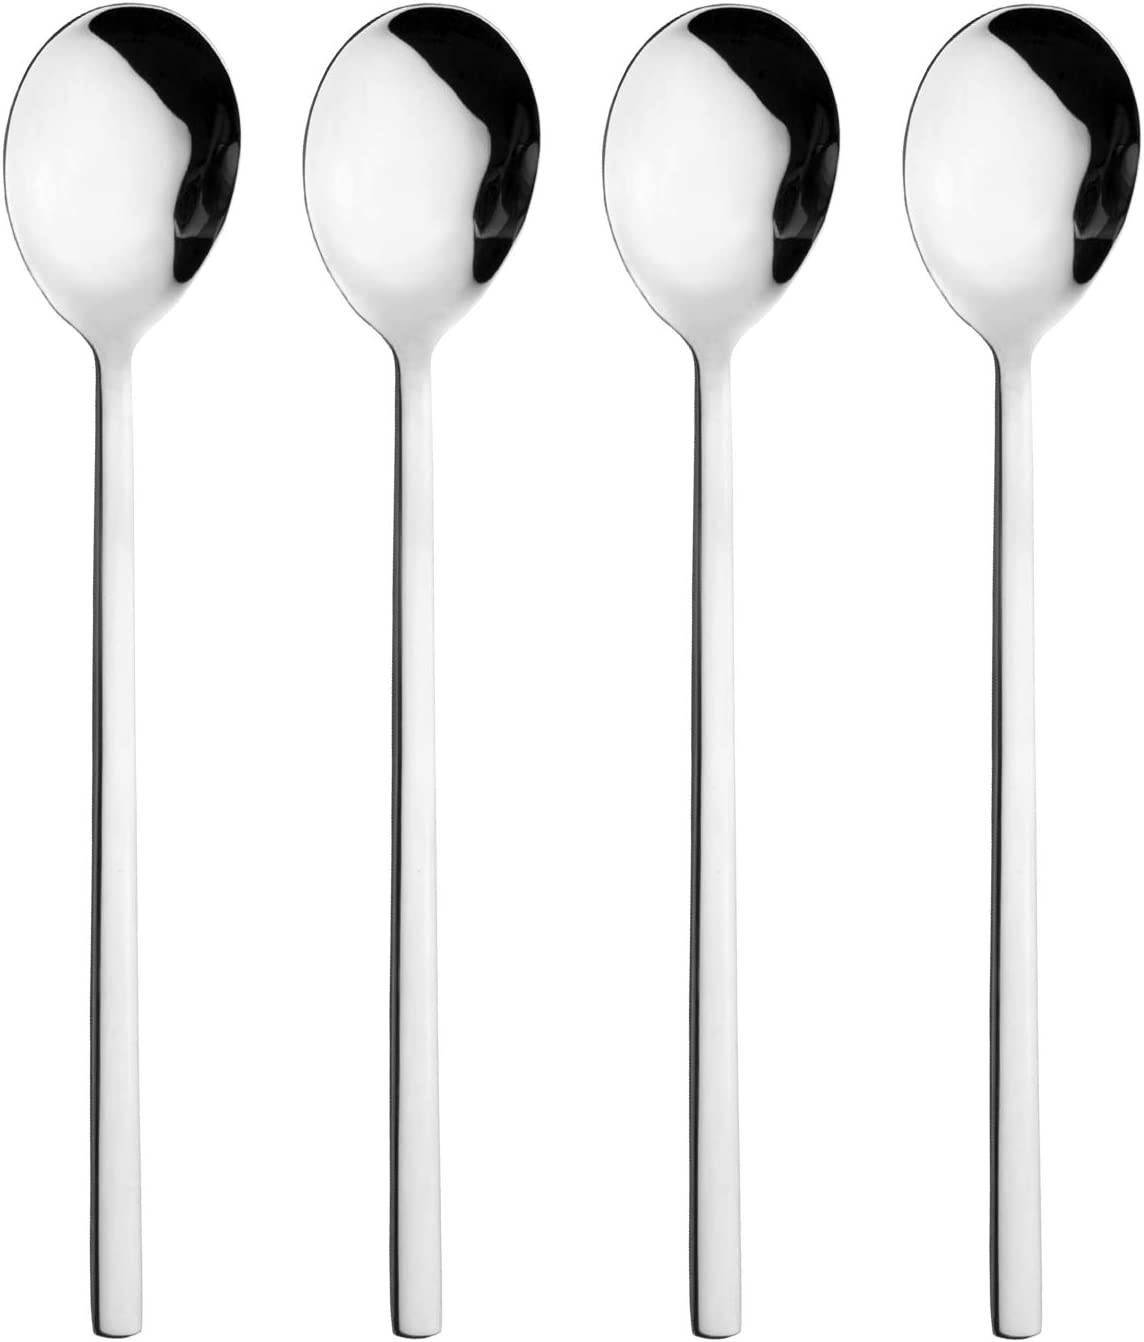 Spoons 4 Pack Stainless Steel Soup Spoons Square and Round Dinner Rice Spoons for Home Kitchen